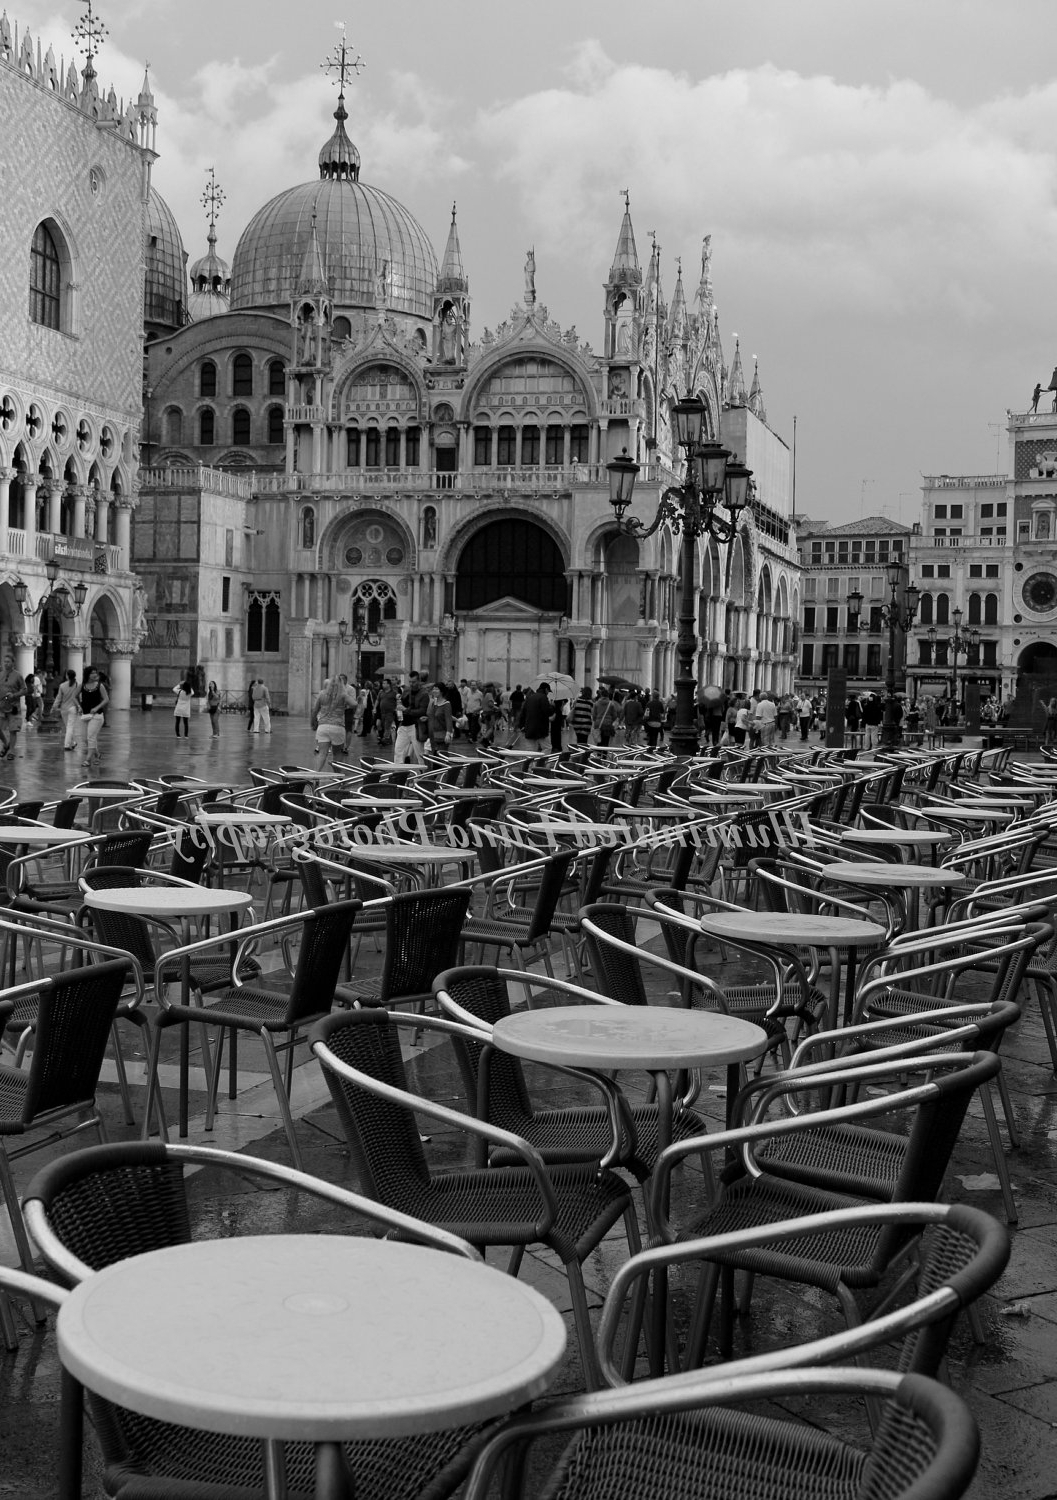 Cafe In St Mark's Square, Venice – 5 X 7 Fine Art Black And White Intended For Recent Italian Travel Wall Art (View 3 of 15)